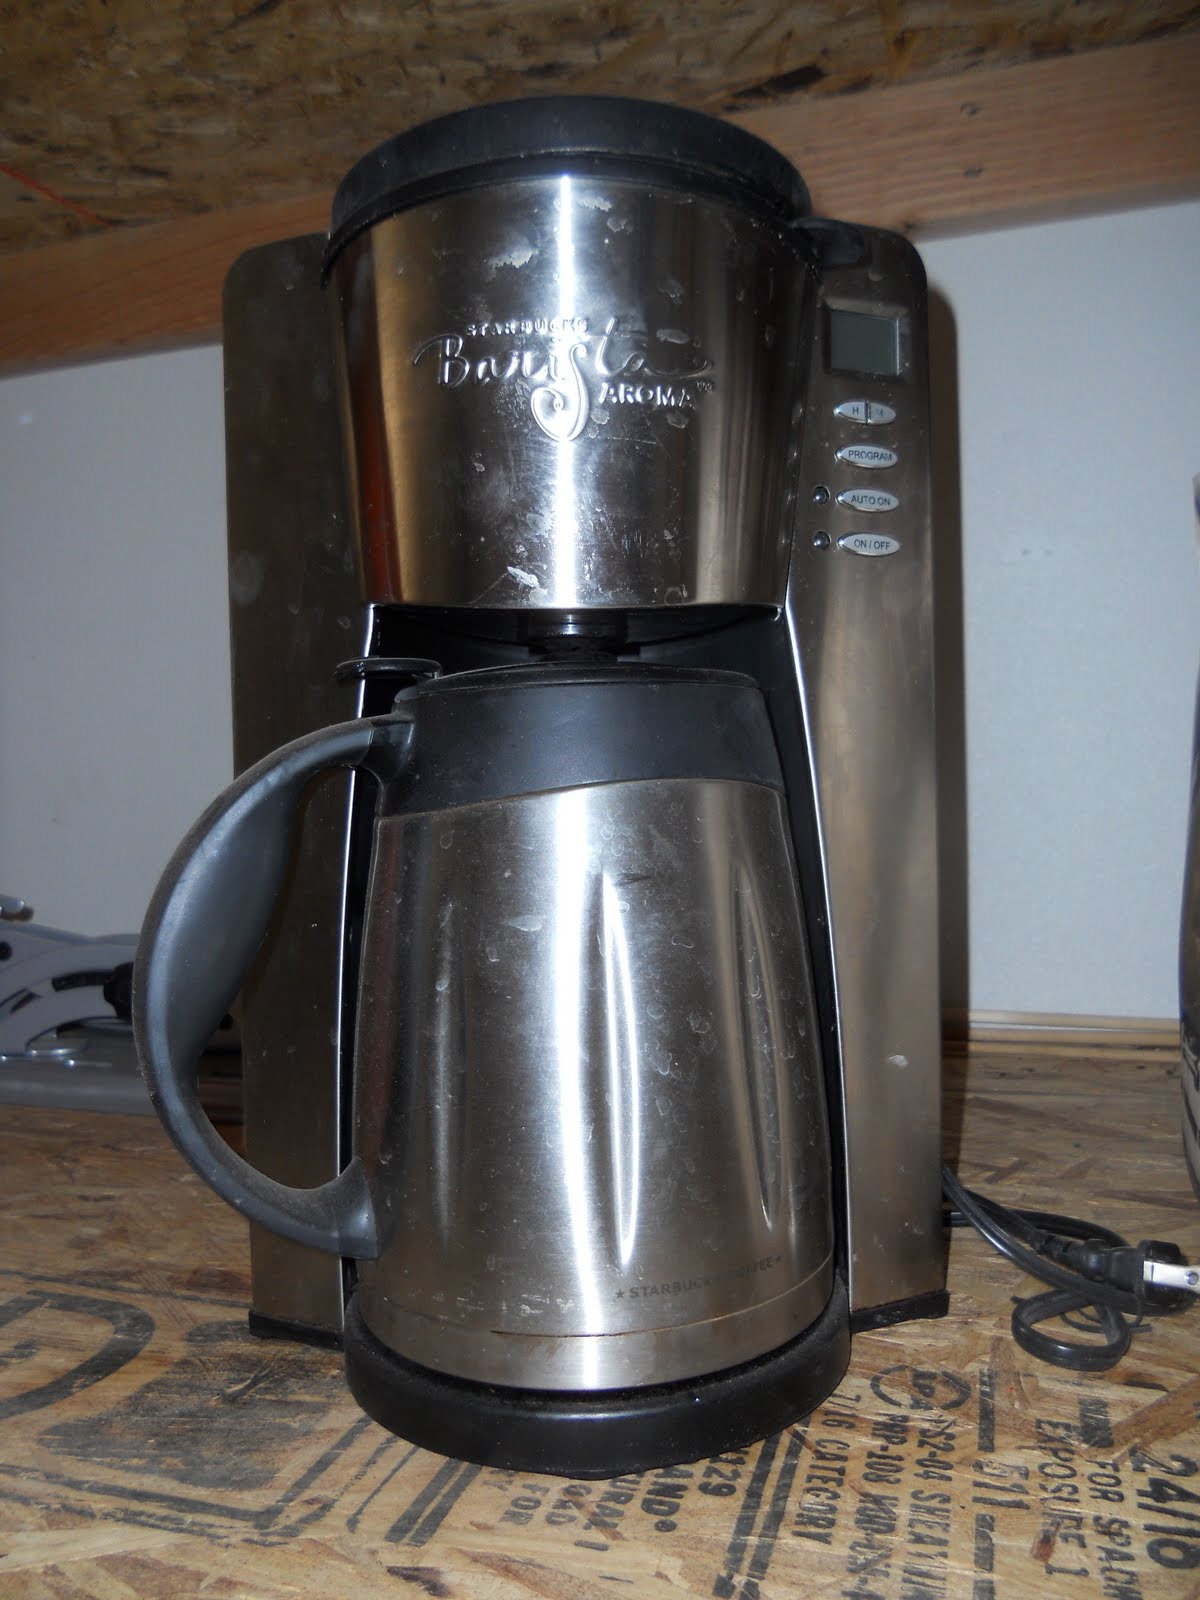 Online yard sale: Starbucks stainless steel programmable coffee pot with stainless steel filter USD 40